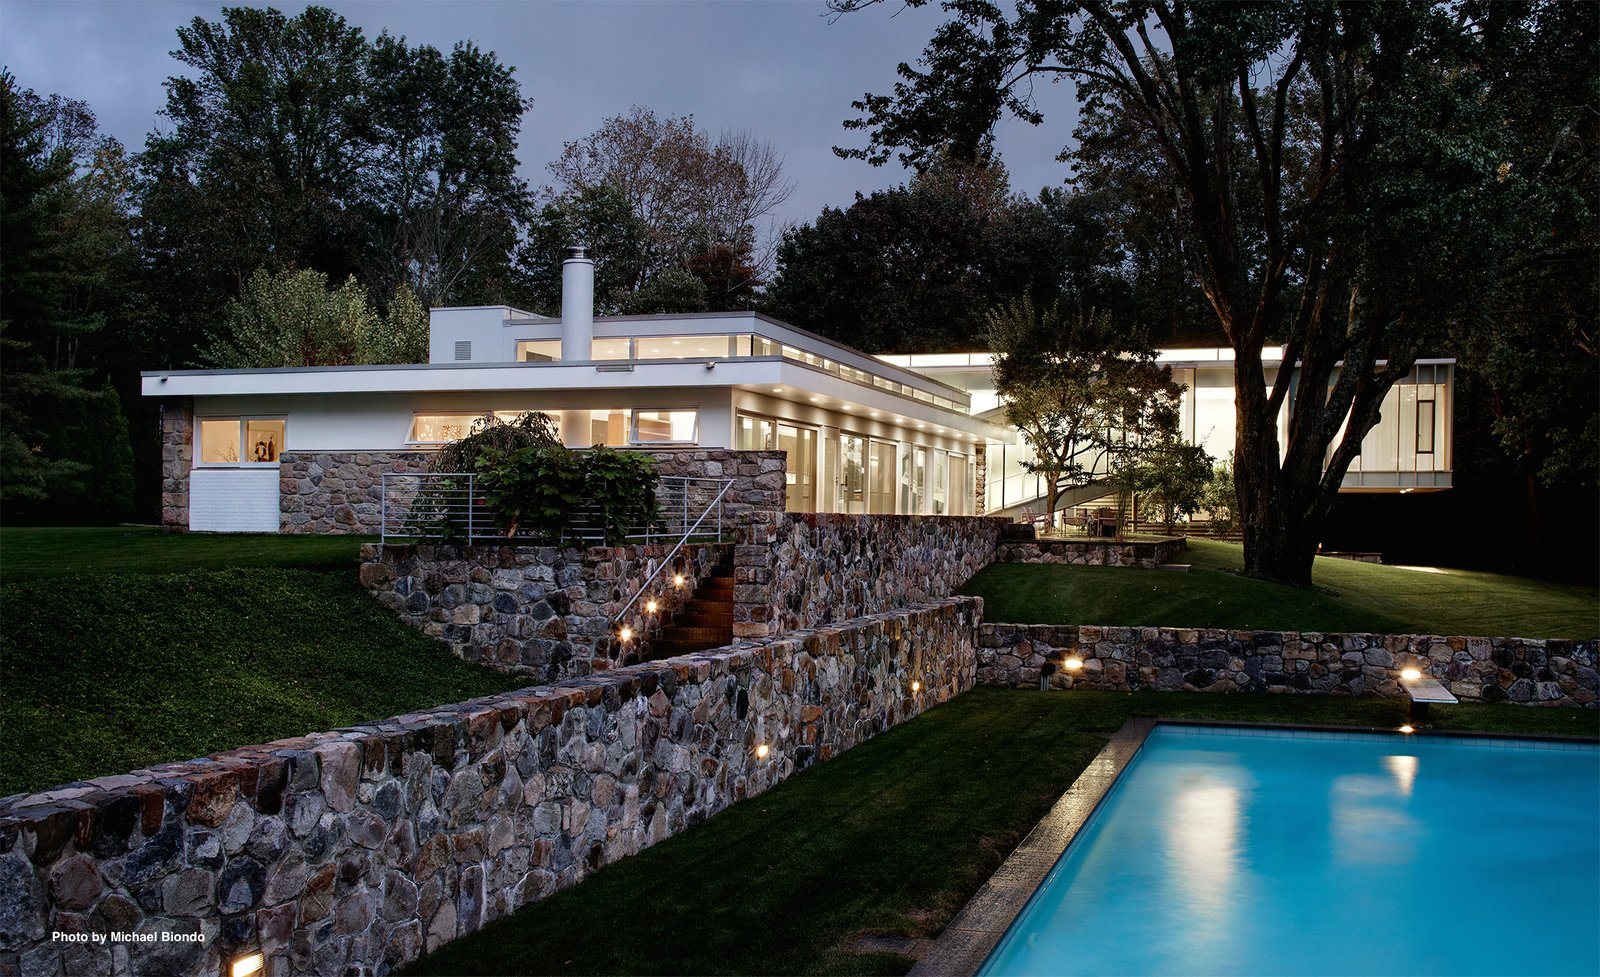 Exterior The Breuer property sits on three acres and includes a heated pool, pool house that was originally designed in 1981, sunning deck, and a Mori-designed wine cellar. The terrace features a waterfall and fern garden.  Marcel Breuer's New Canaan Home